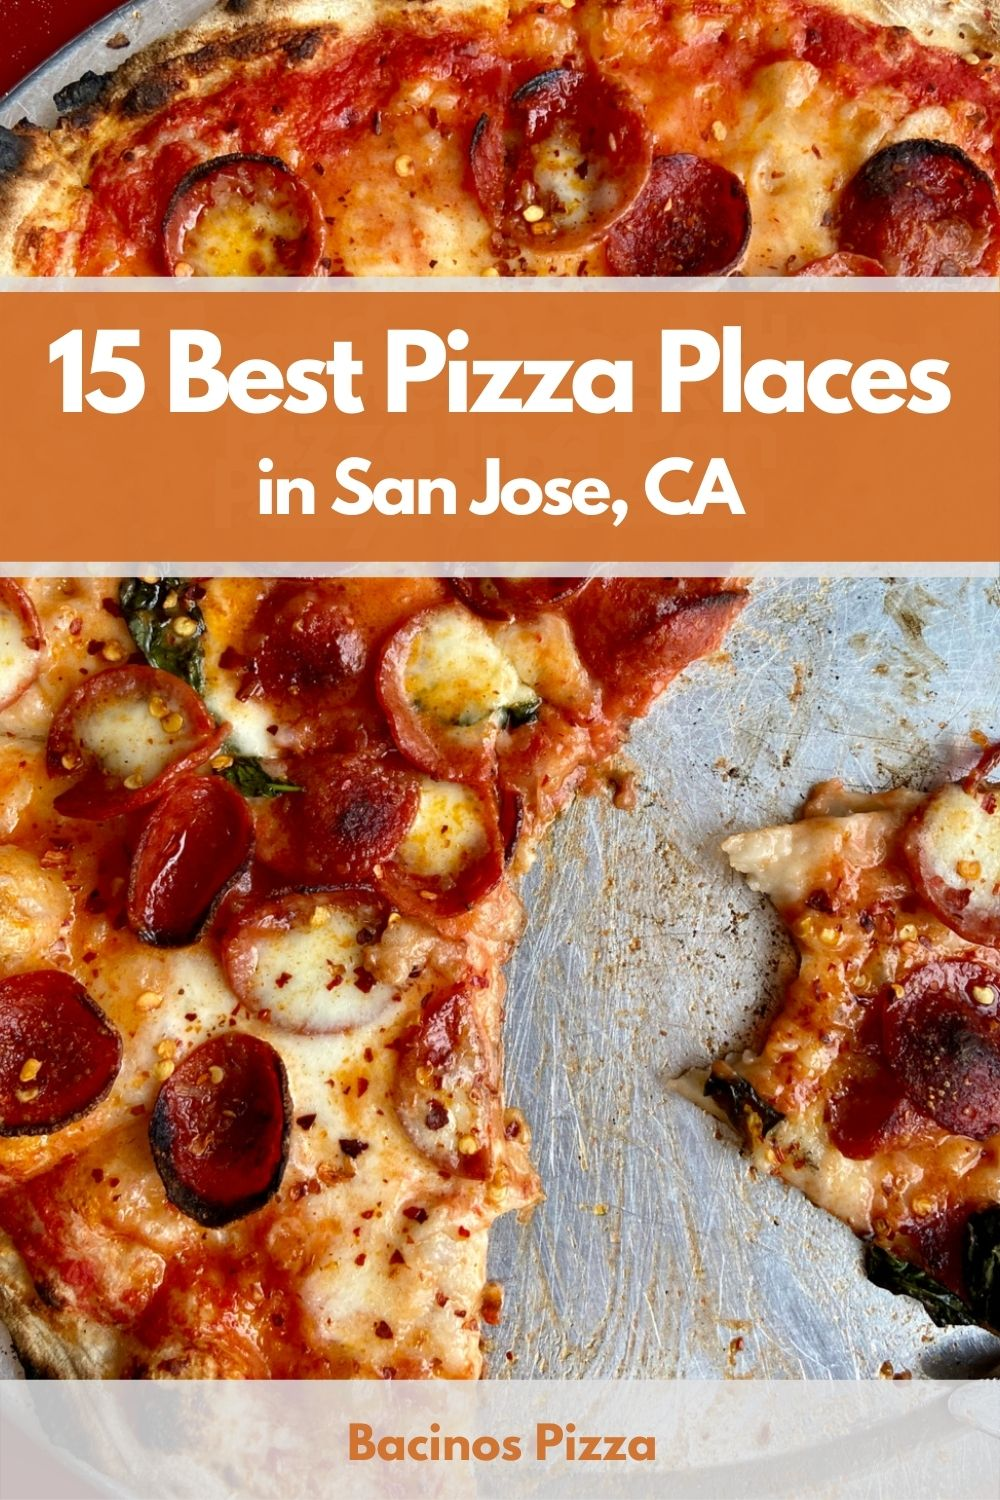 15 Best Pizza Places in San Jose, CA pin 2